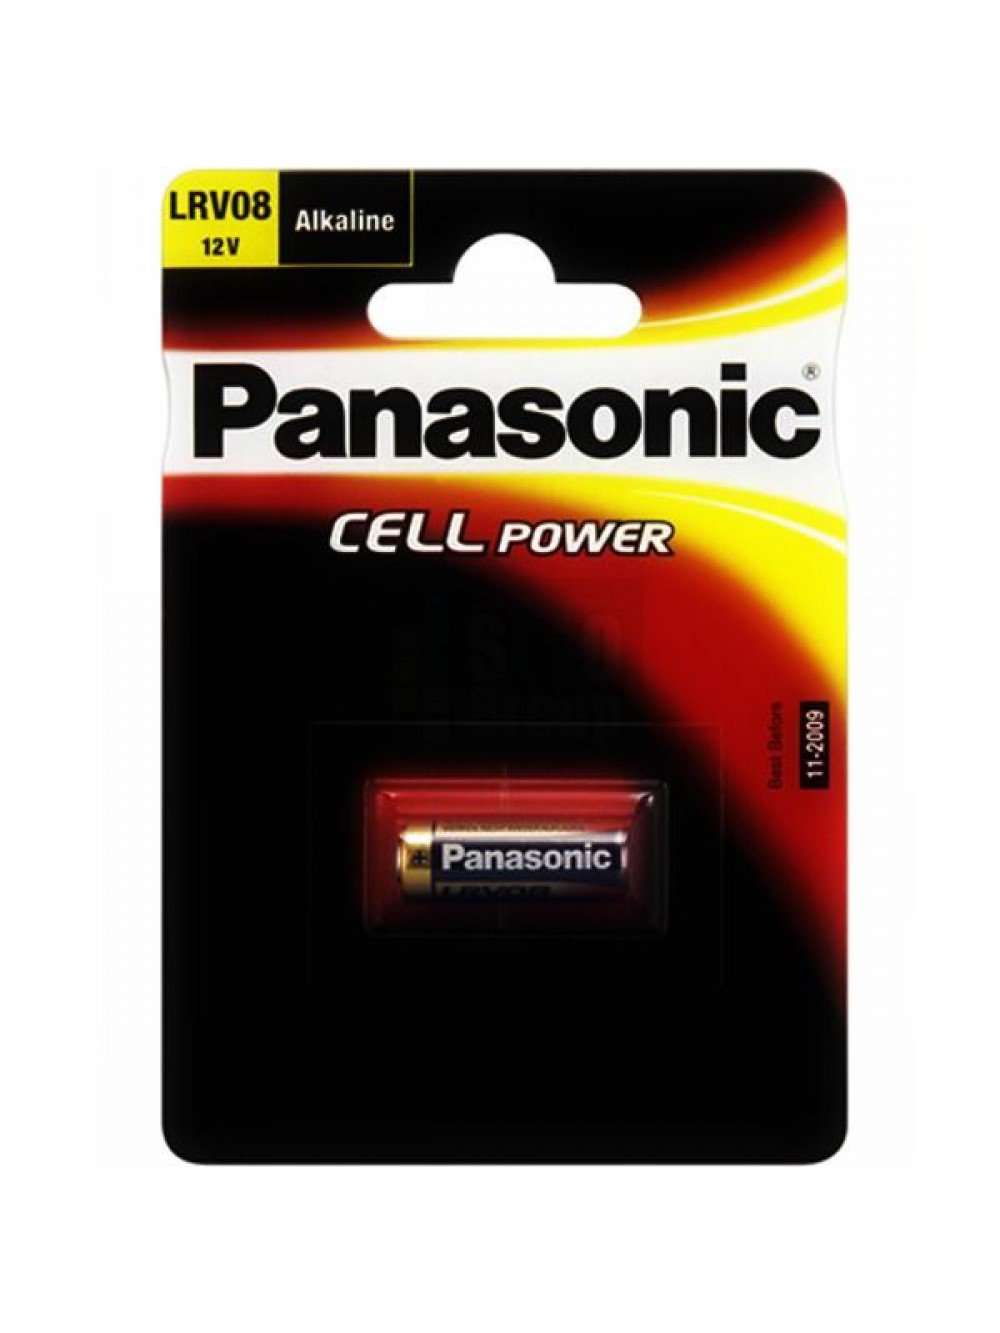 PILA LRV08 ALCALINA PANASONIC POWERCELLS 5019068592568